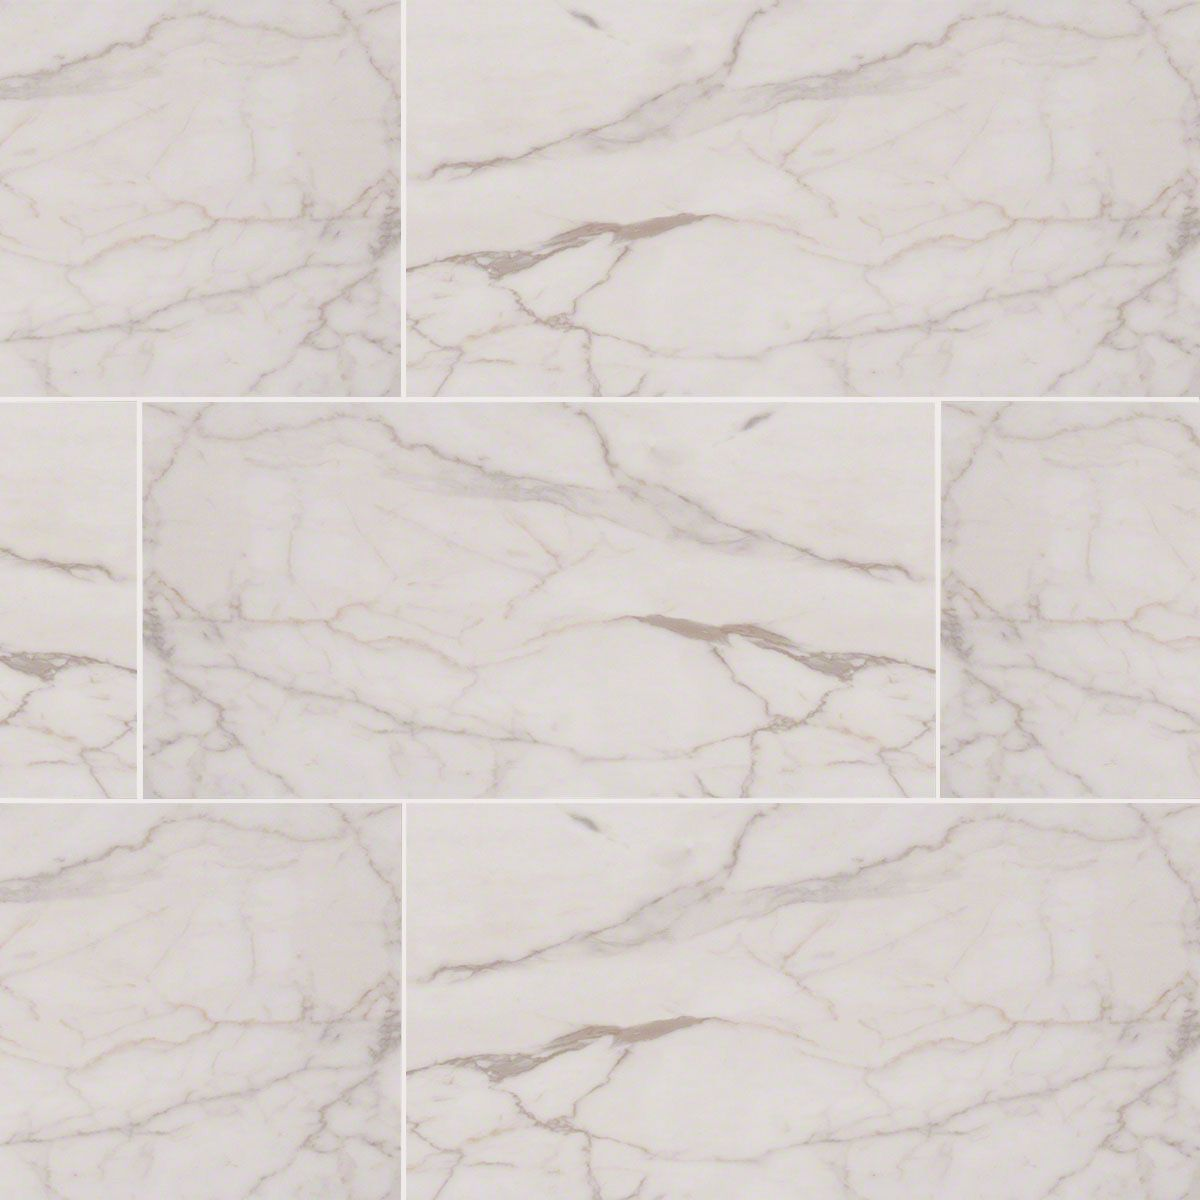 We Re Excited To Add 3 Gorgeous New 12x24 Tile Options To Our